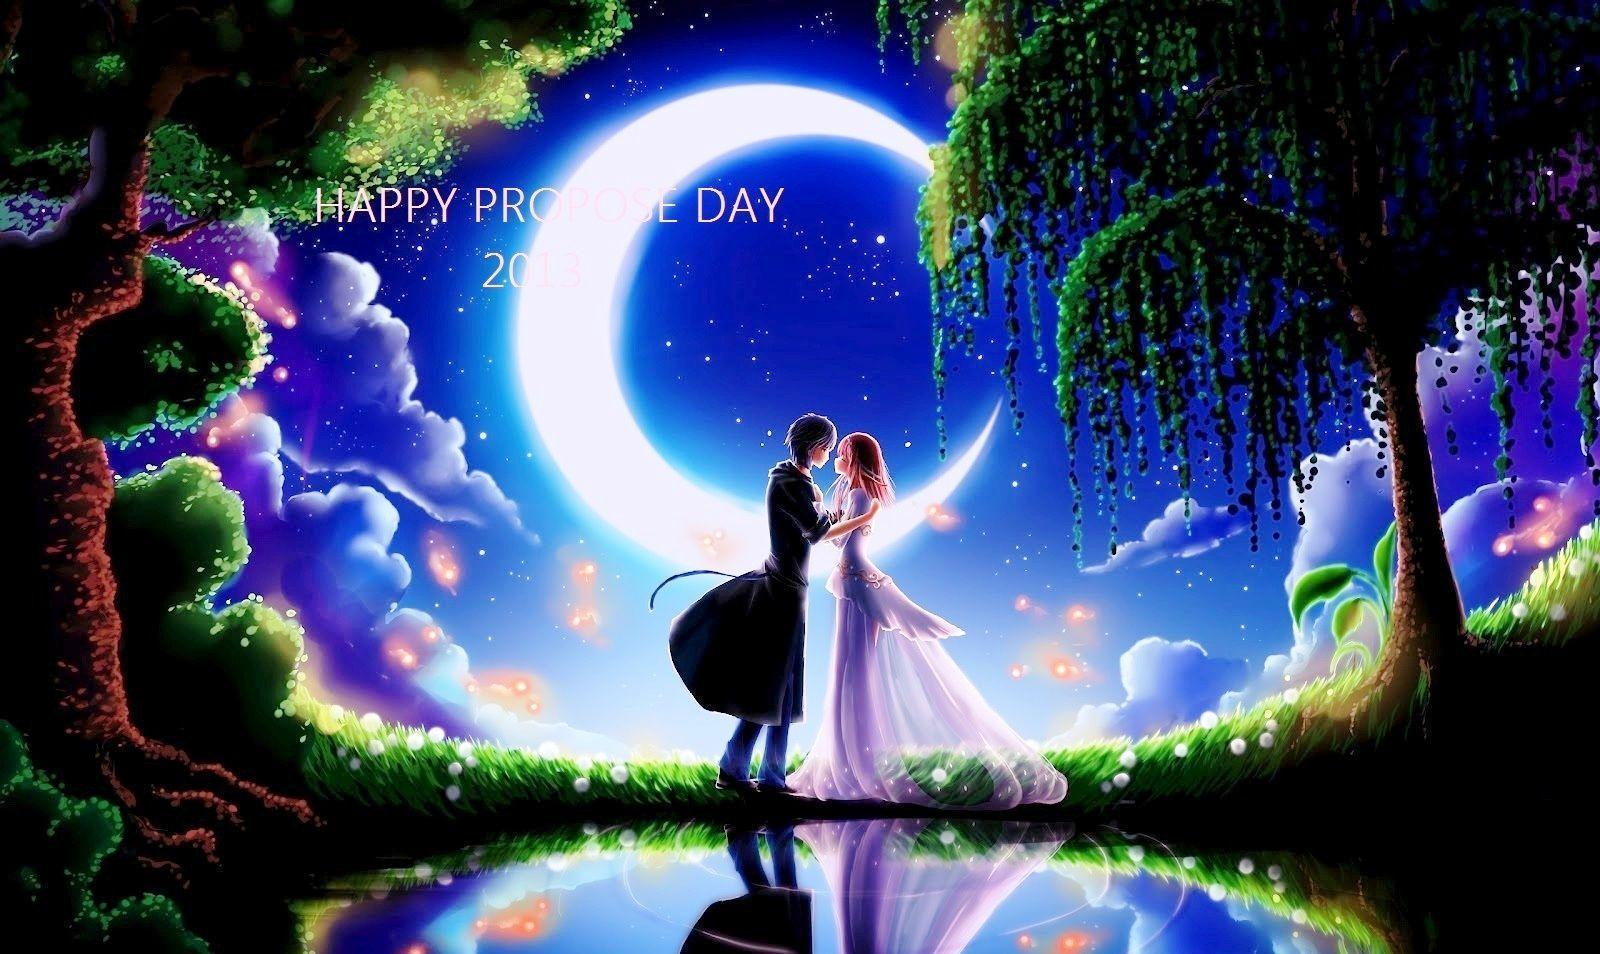 Advance Propose Day Whatsapp Dp Image Wallpapers Pictures Photos 2017